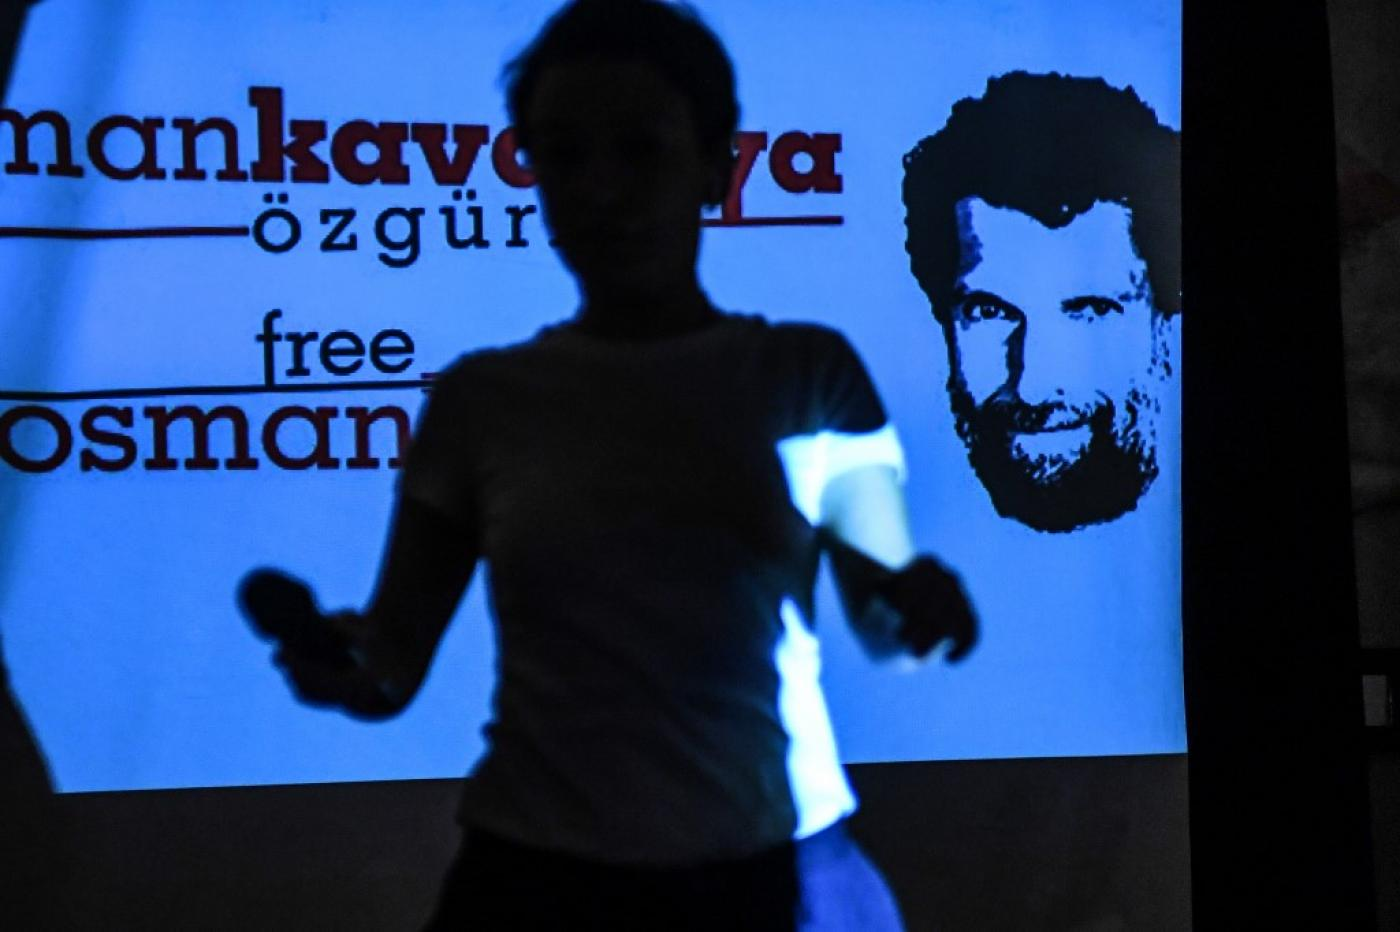 Osman Kavala was first arrested in November 2017 and charged with organising the 2013 Gezi Park protests.